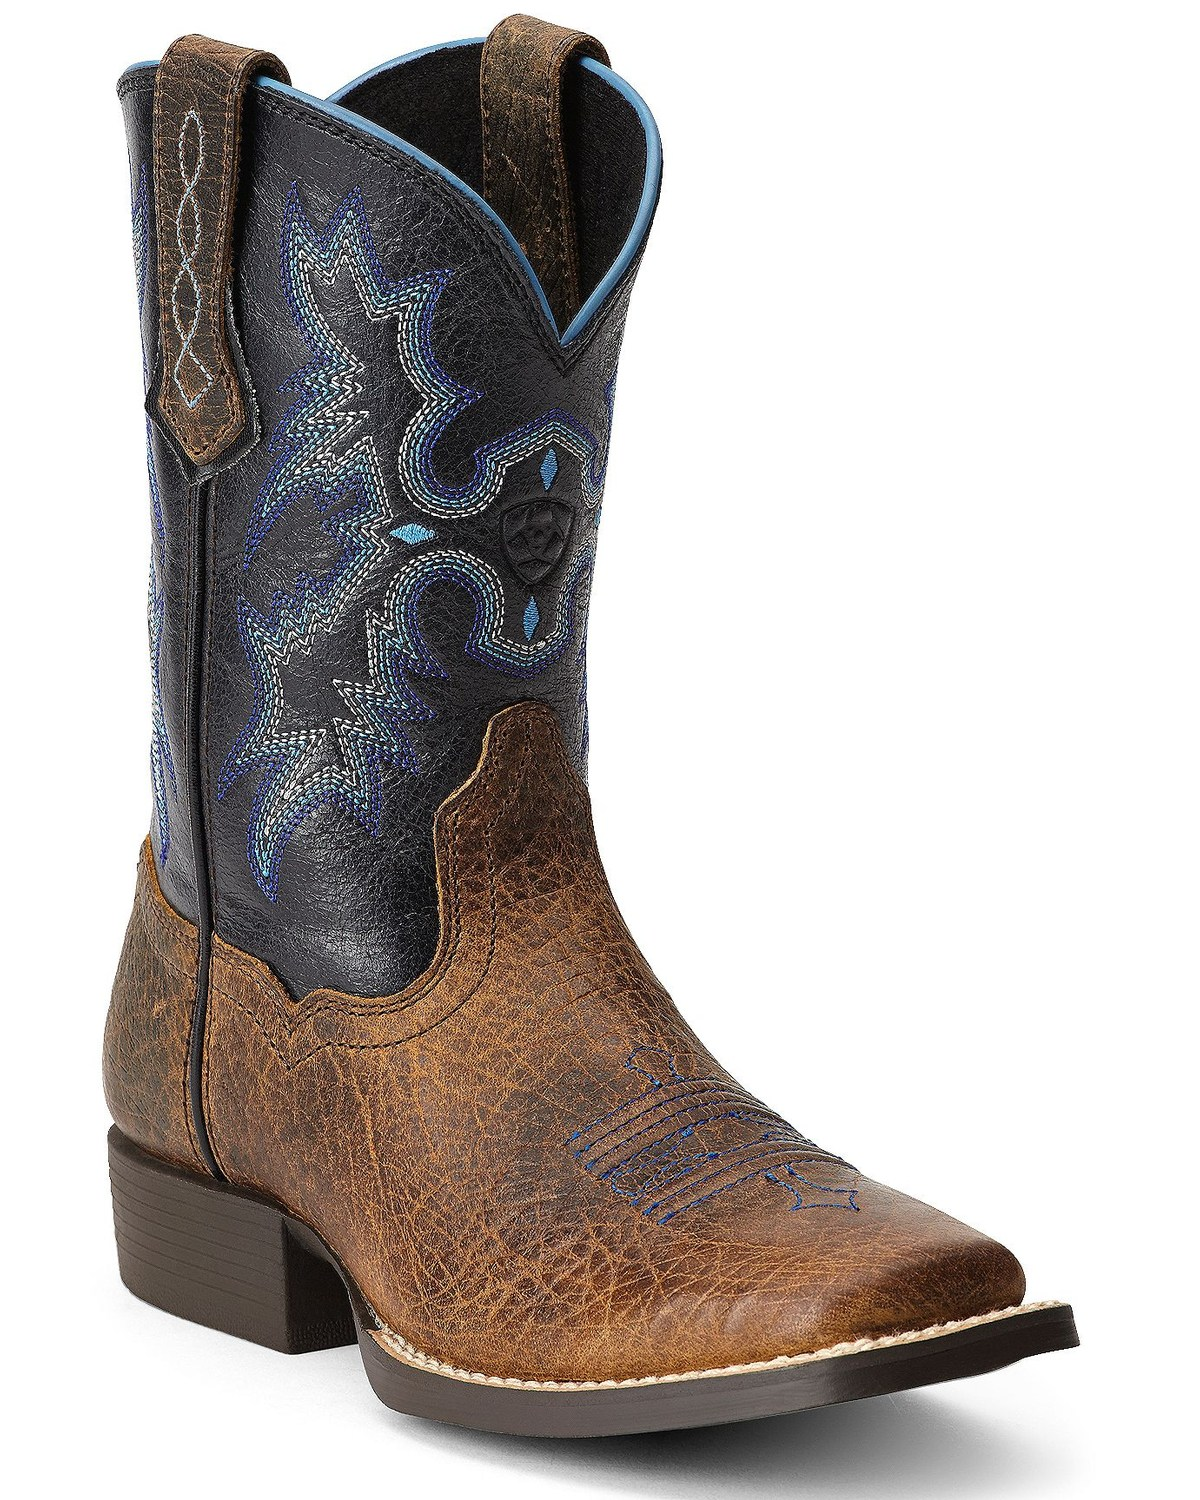 437d23b4d1b Ariat Youth Boys' Tombstone Cowboy Boots - Square Toe